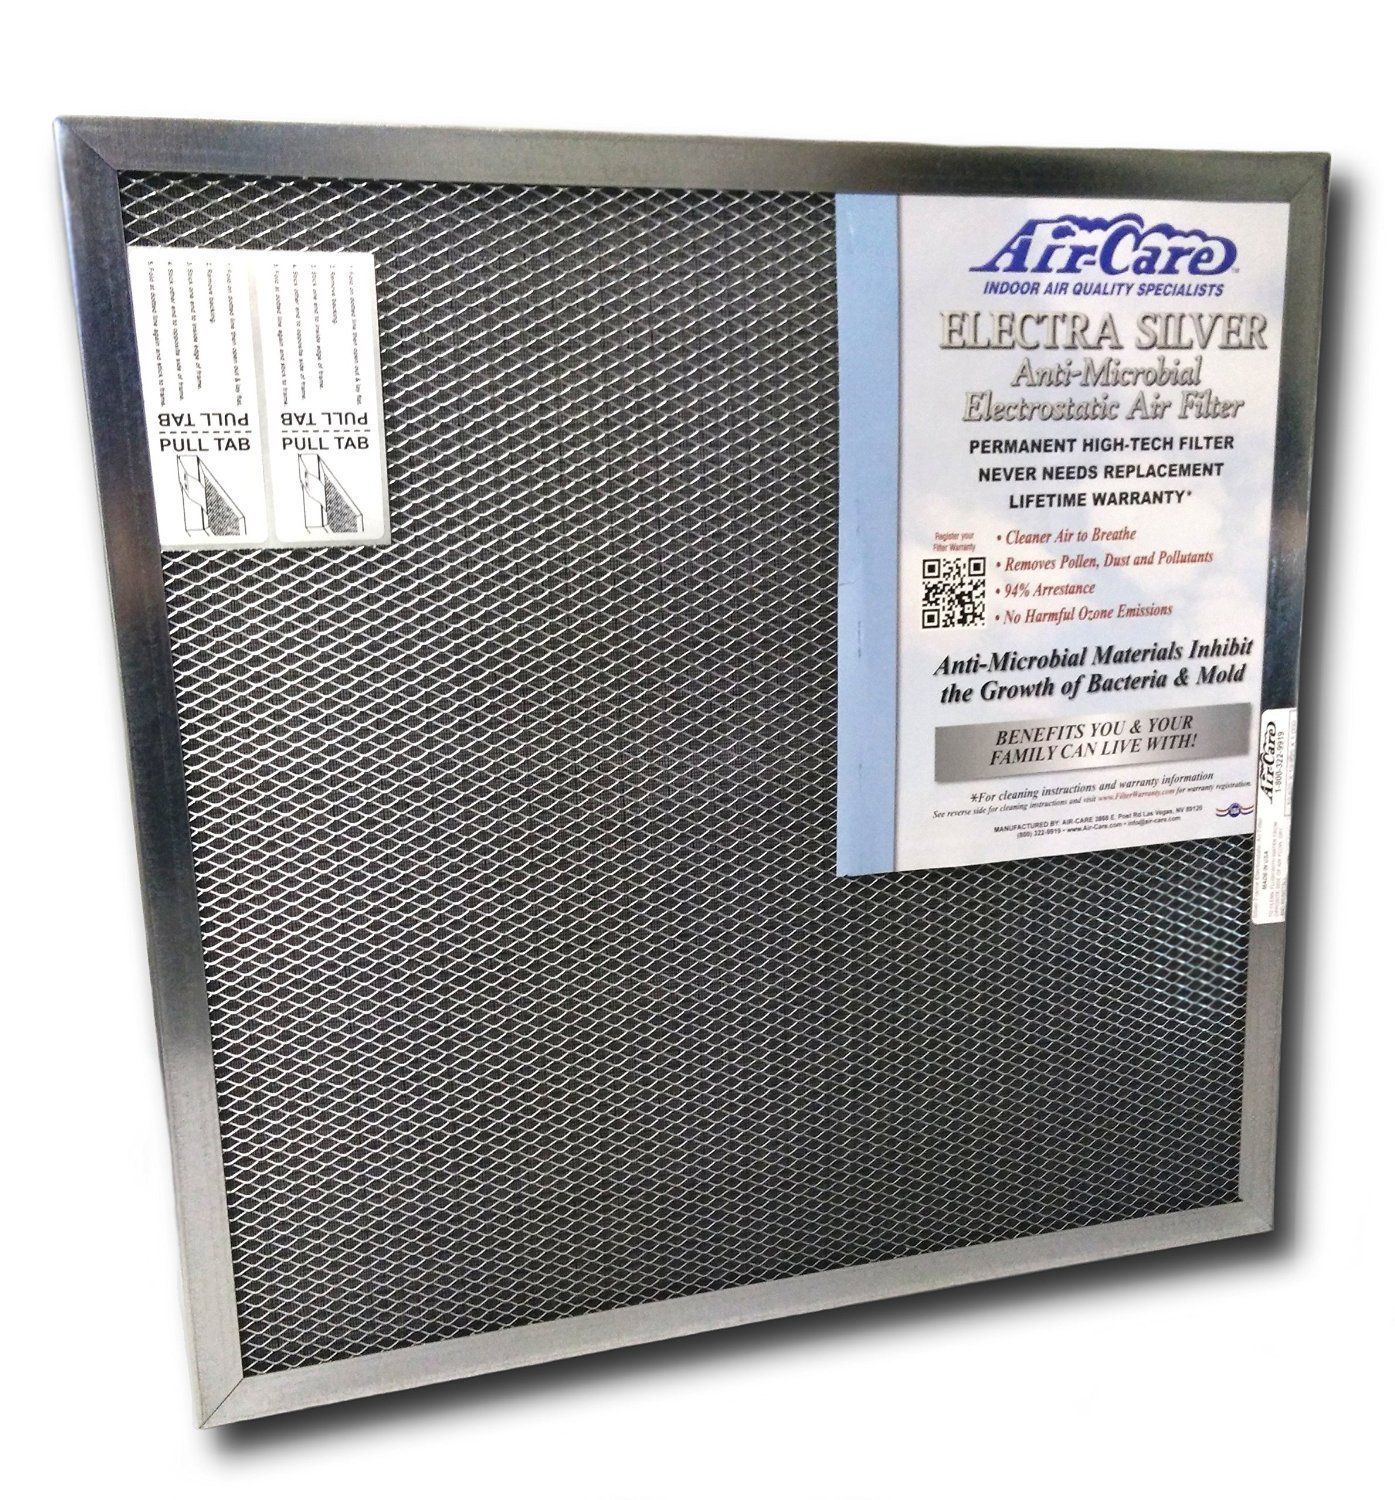 Air-Care 20x30x1 Silver Electrostatic Washable A/C Furnace Air Filter - Limited, Never Buy Another Filter!! - Made In the USA by AirCare